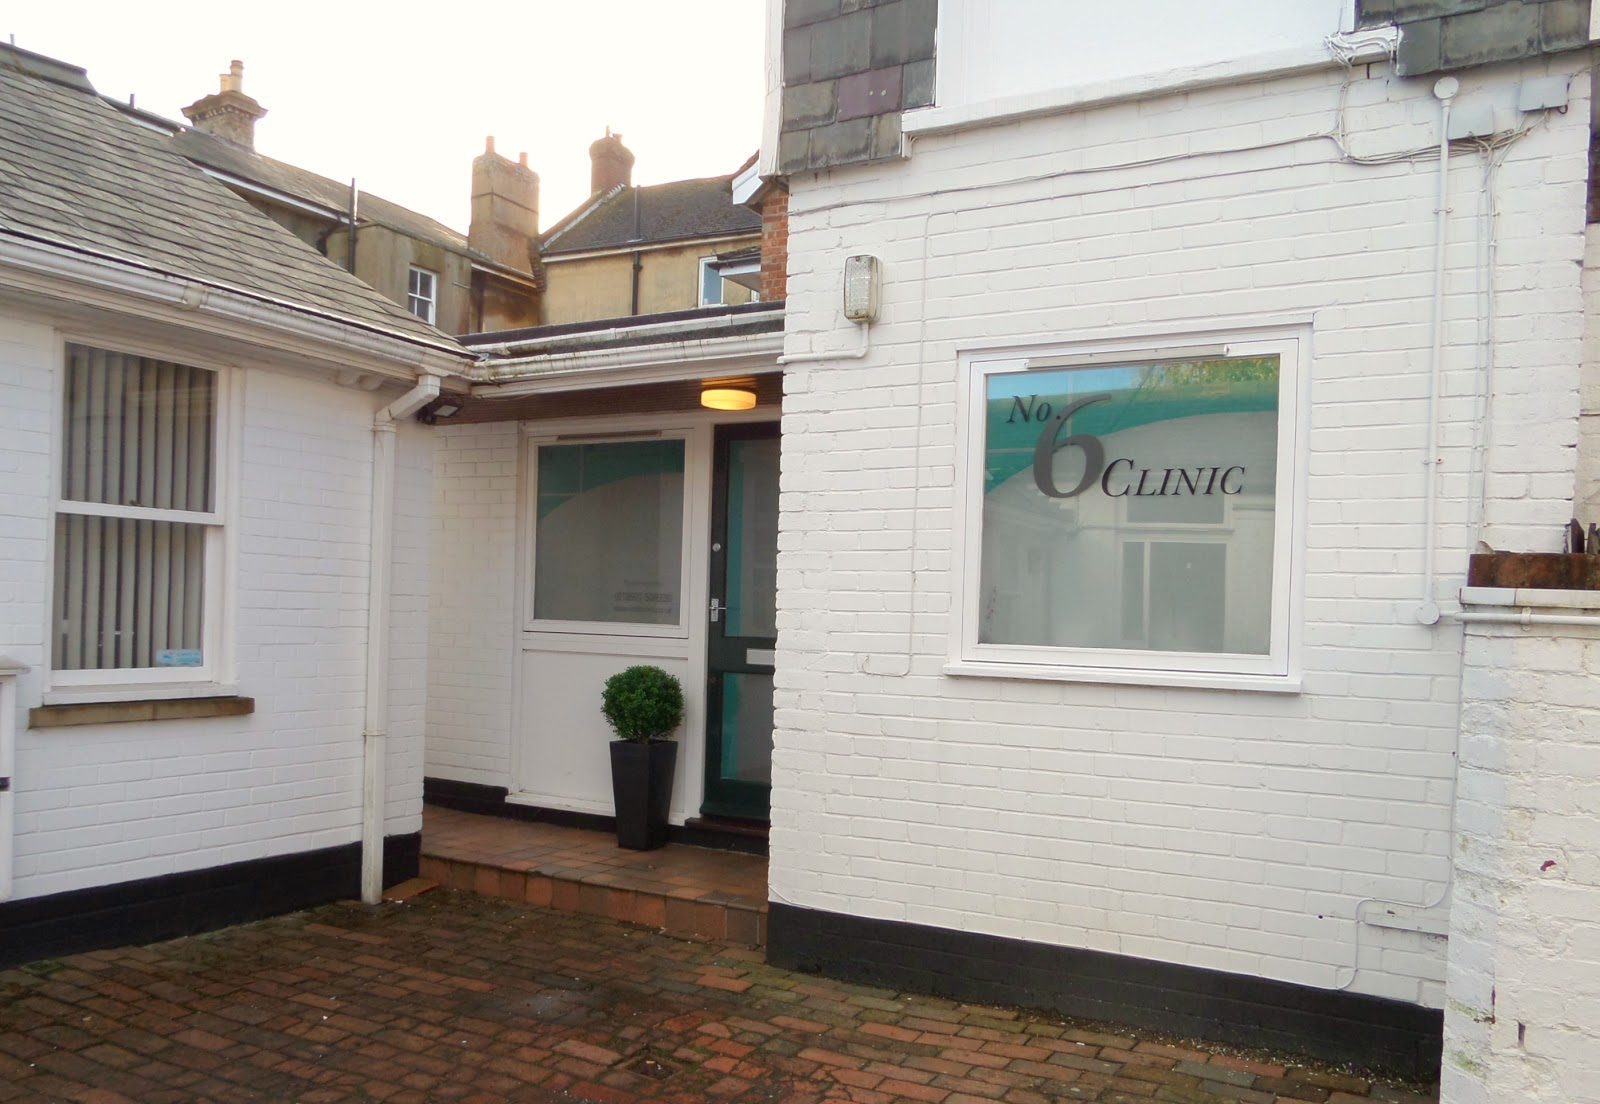 No 6 Clinic Tunbridge Wells St Johns